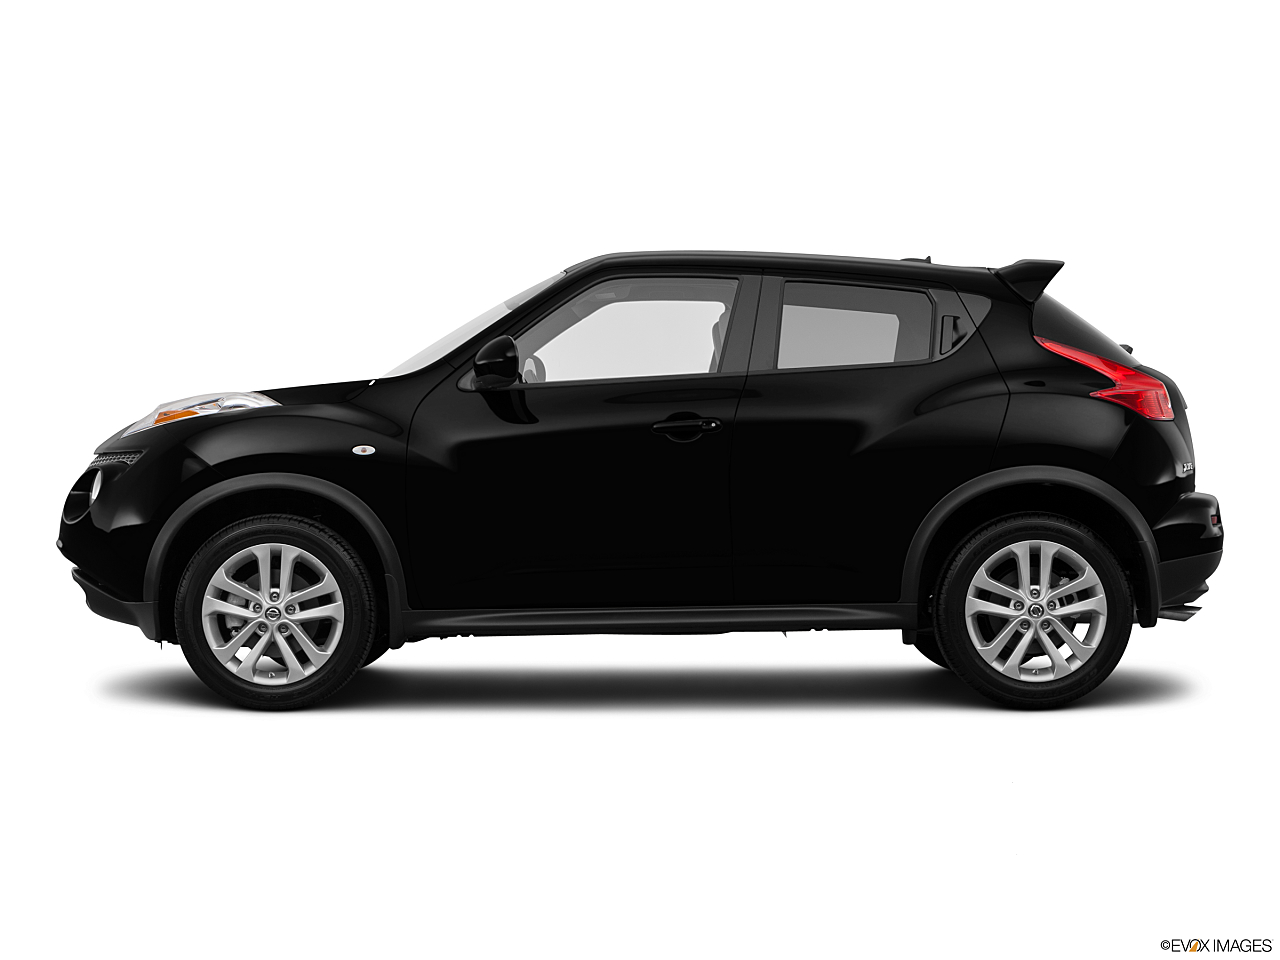 2014 Nissan JUKE At Kelly Nissan Of Lynnfield Of Lynnfield, MA. The  Dealership Has